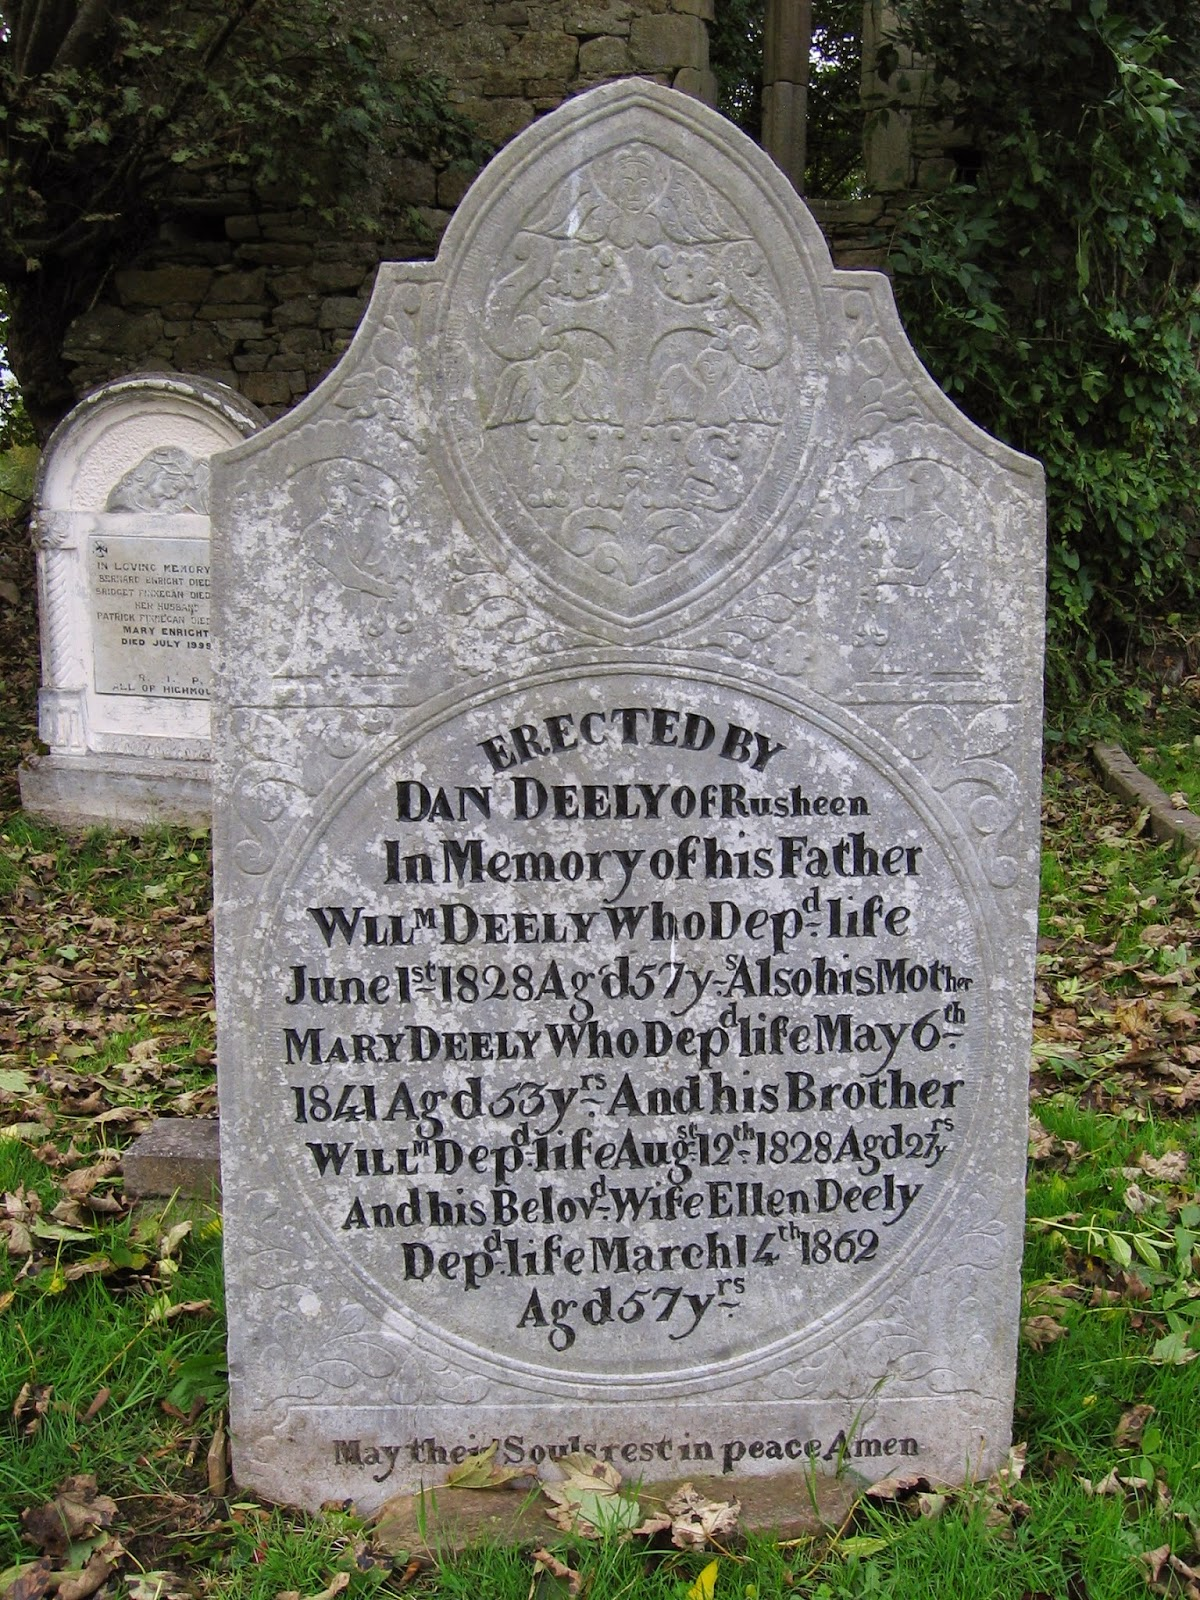 Memorial for Deely family members buried at Castletown in County Limerick Ireland